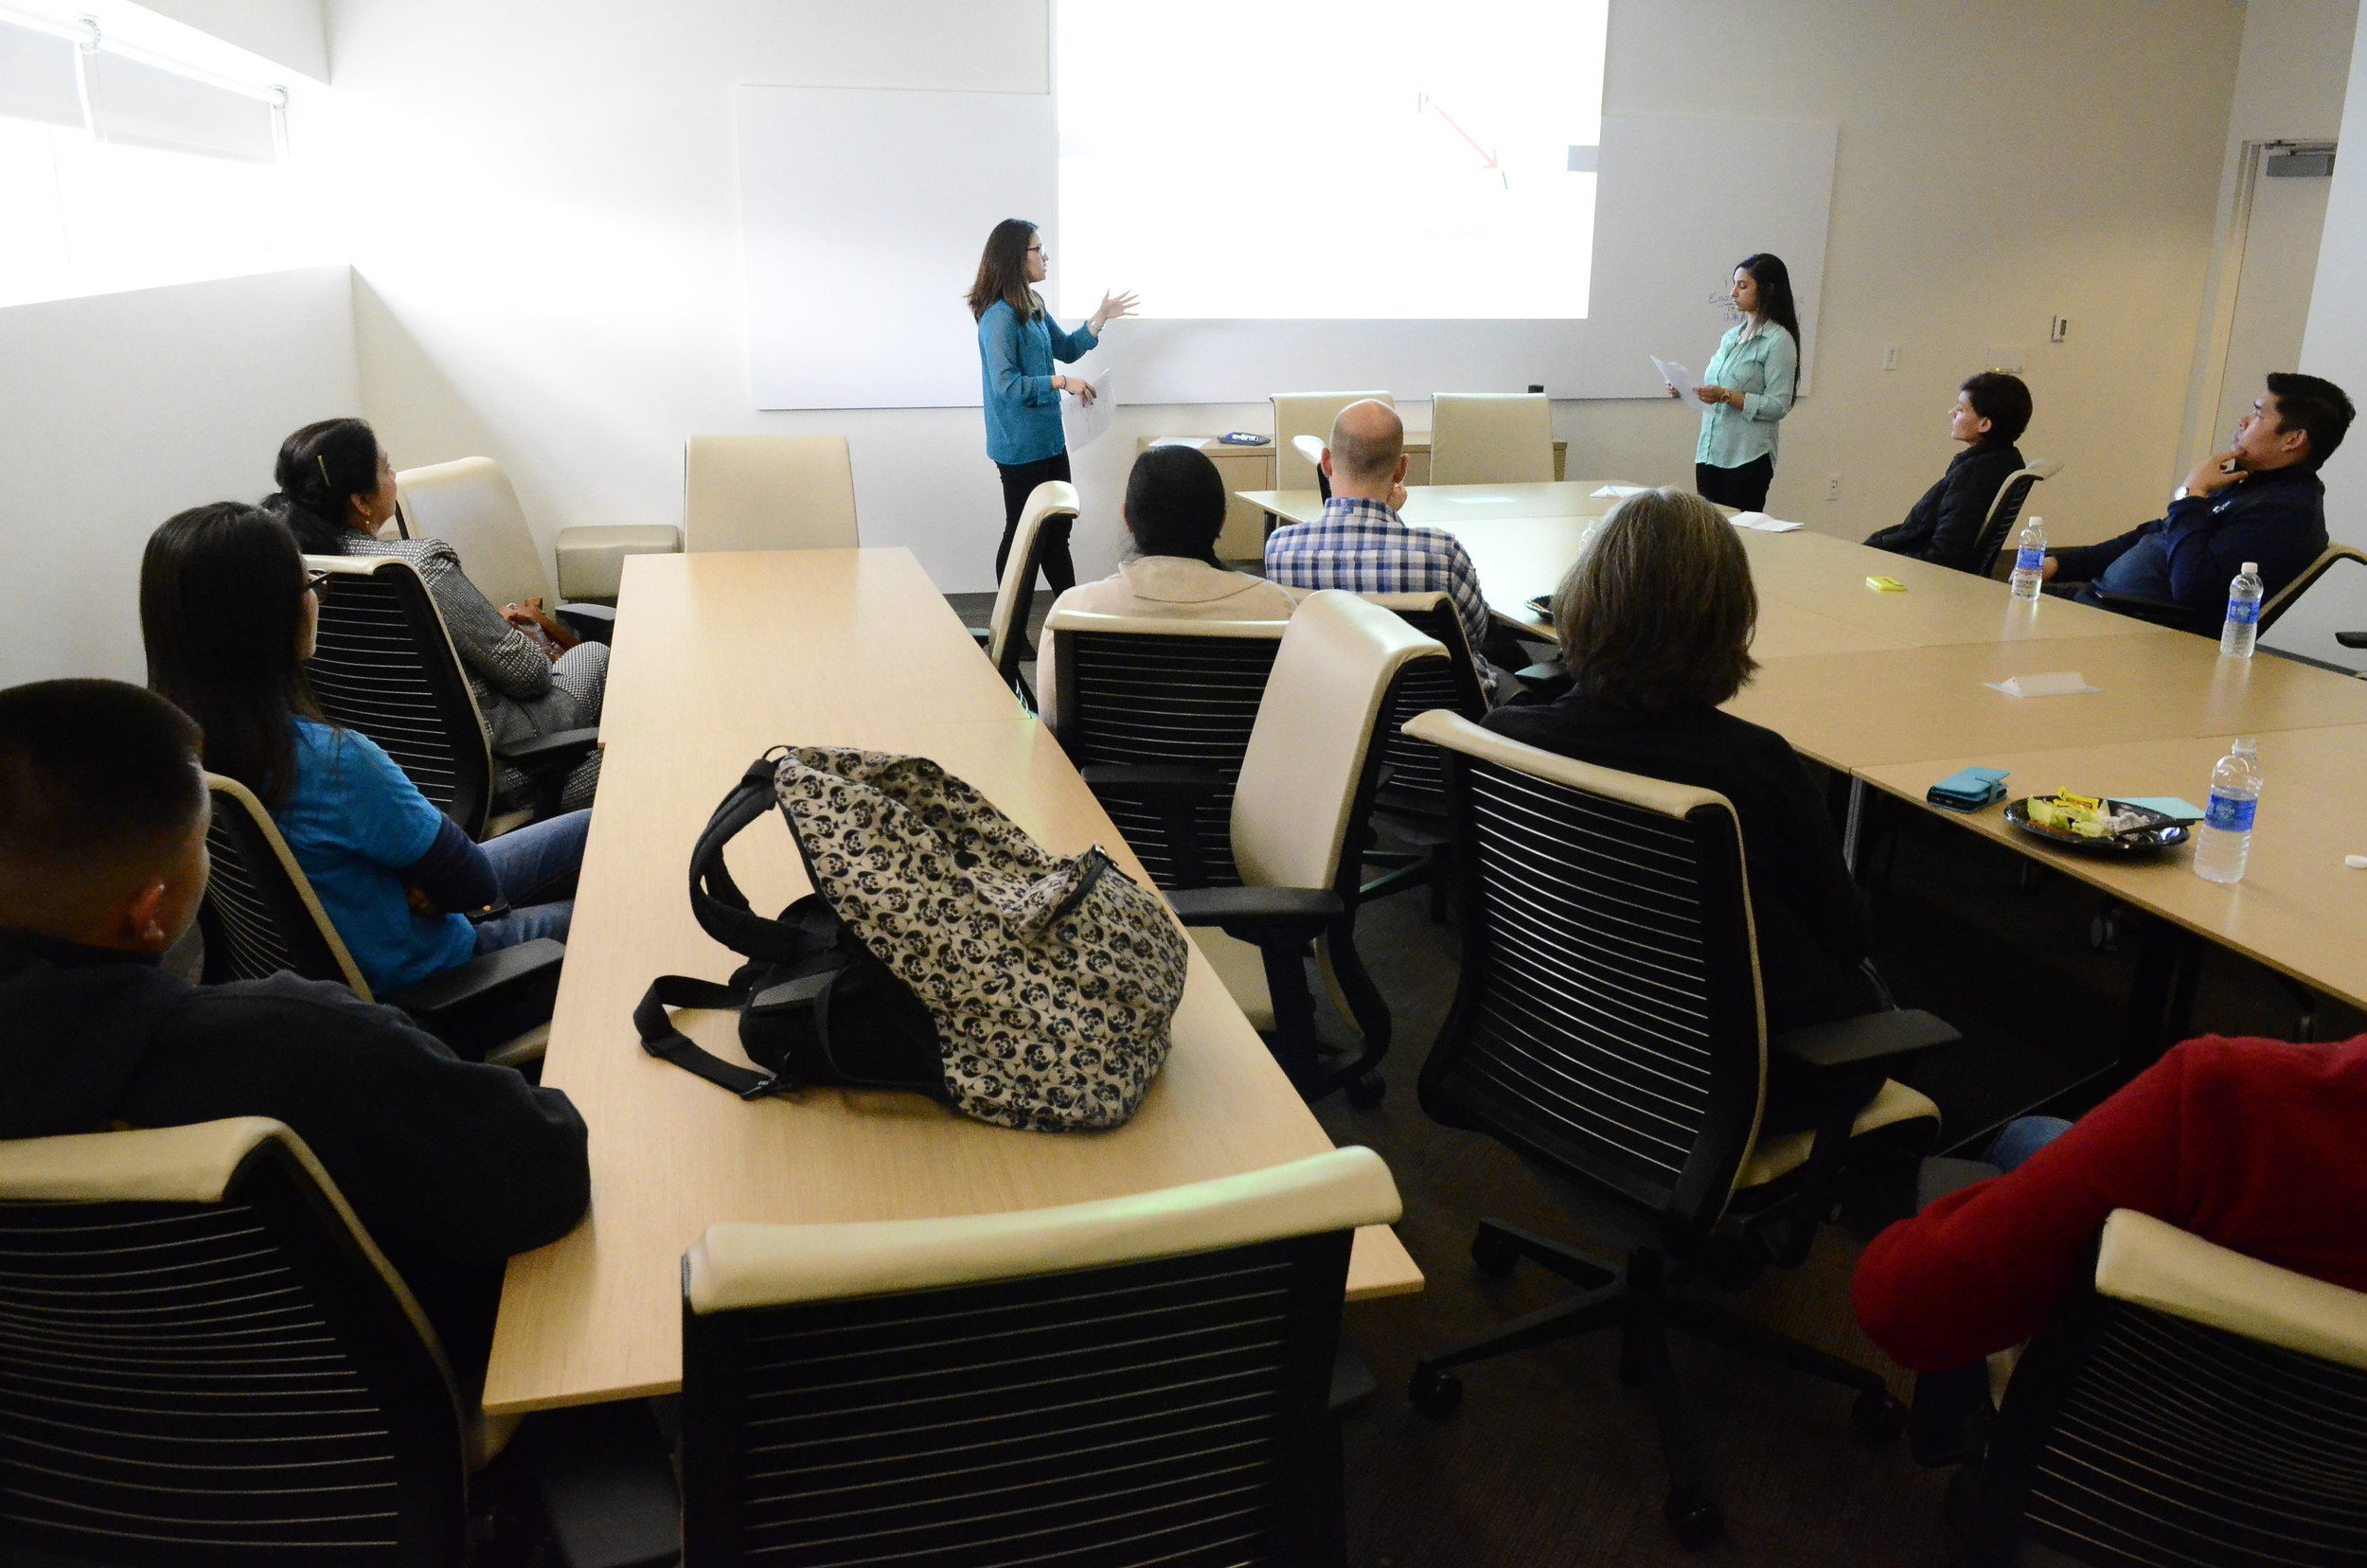 Sarah Tsutsui & Seema Prakash present their research to the Child and Family Science Research-in-Progress Group